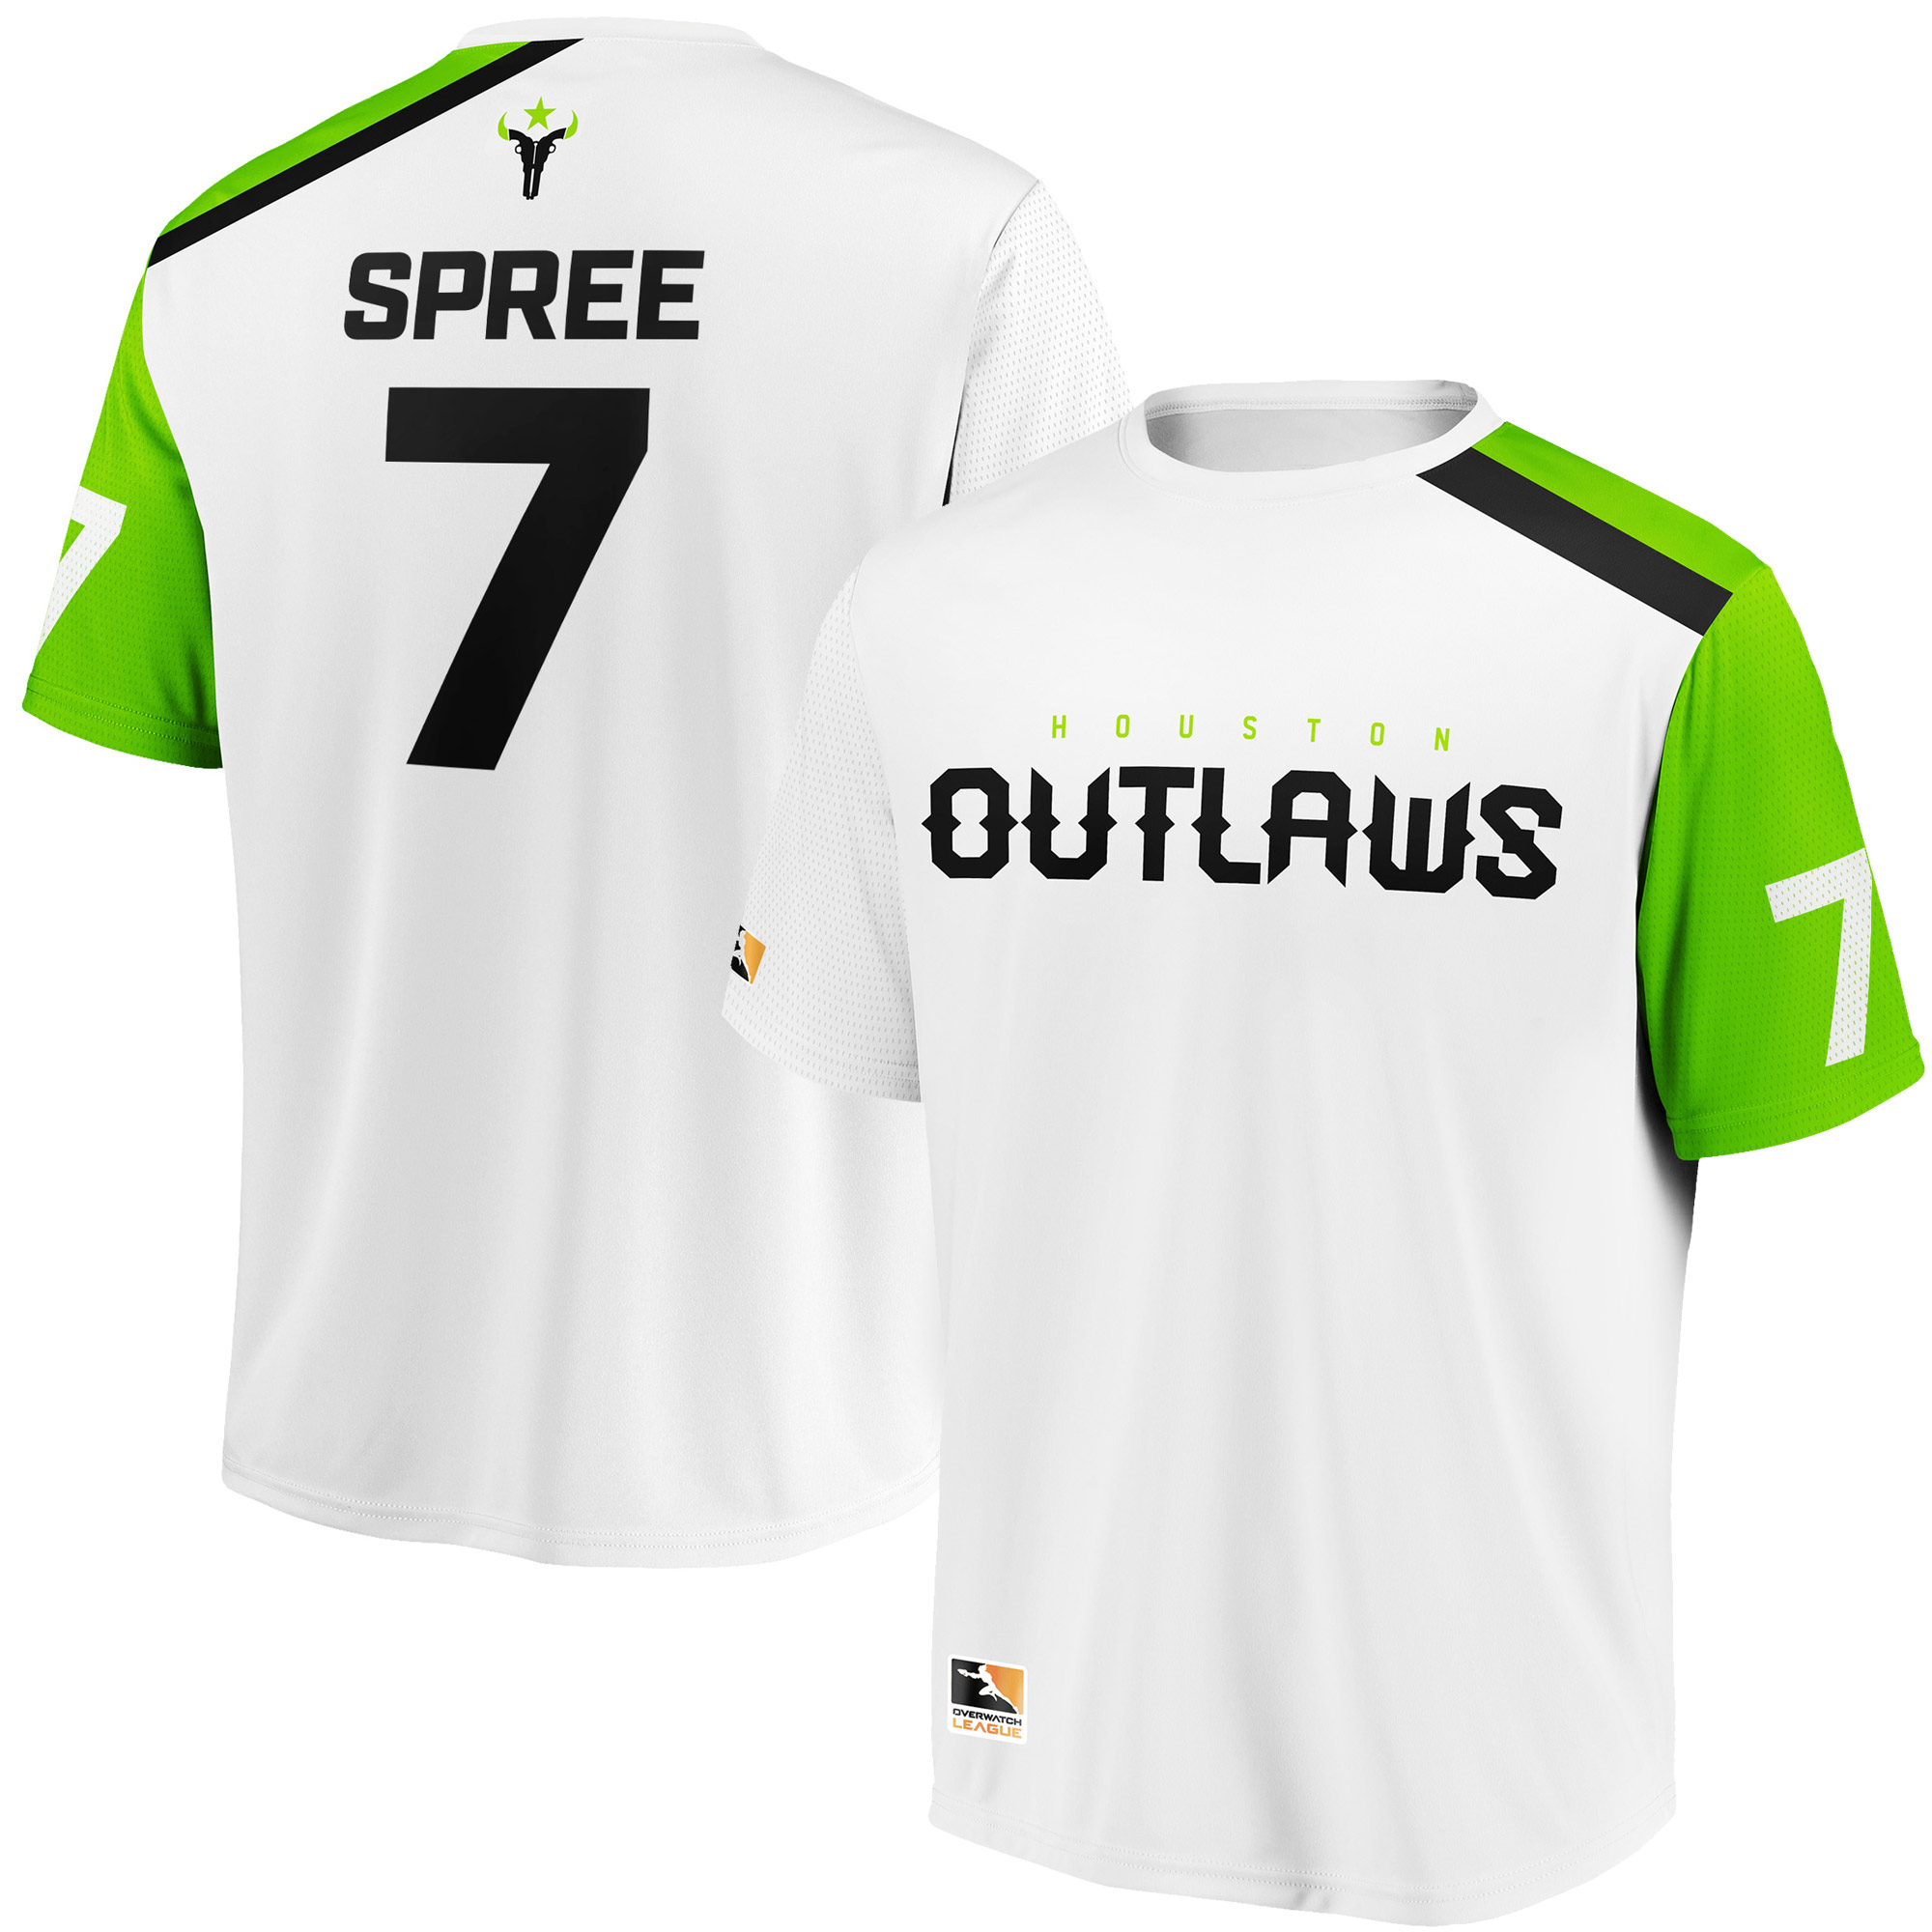 SPREE Houston Outlaws Overwatch League Replica Away Jersey - White